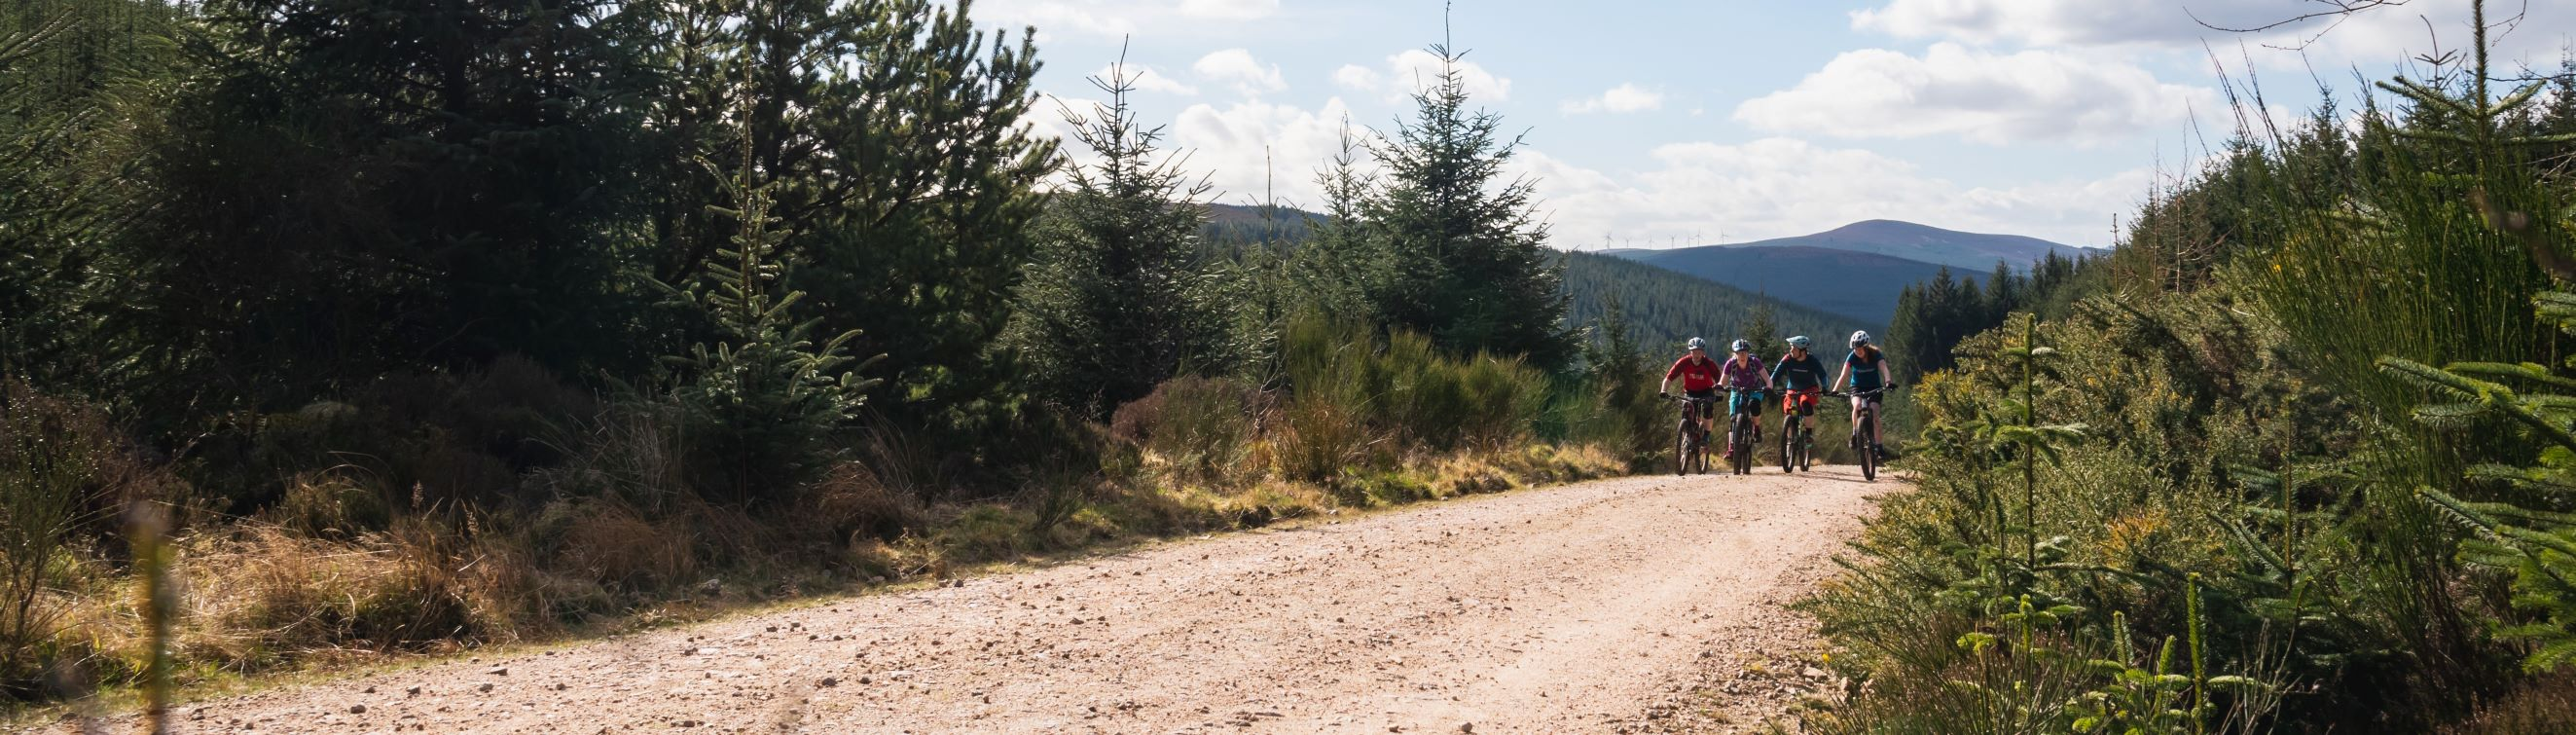 Mountain bikers on a forest road in Aberdeenshire